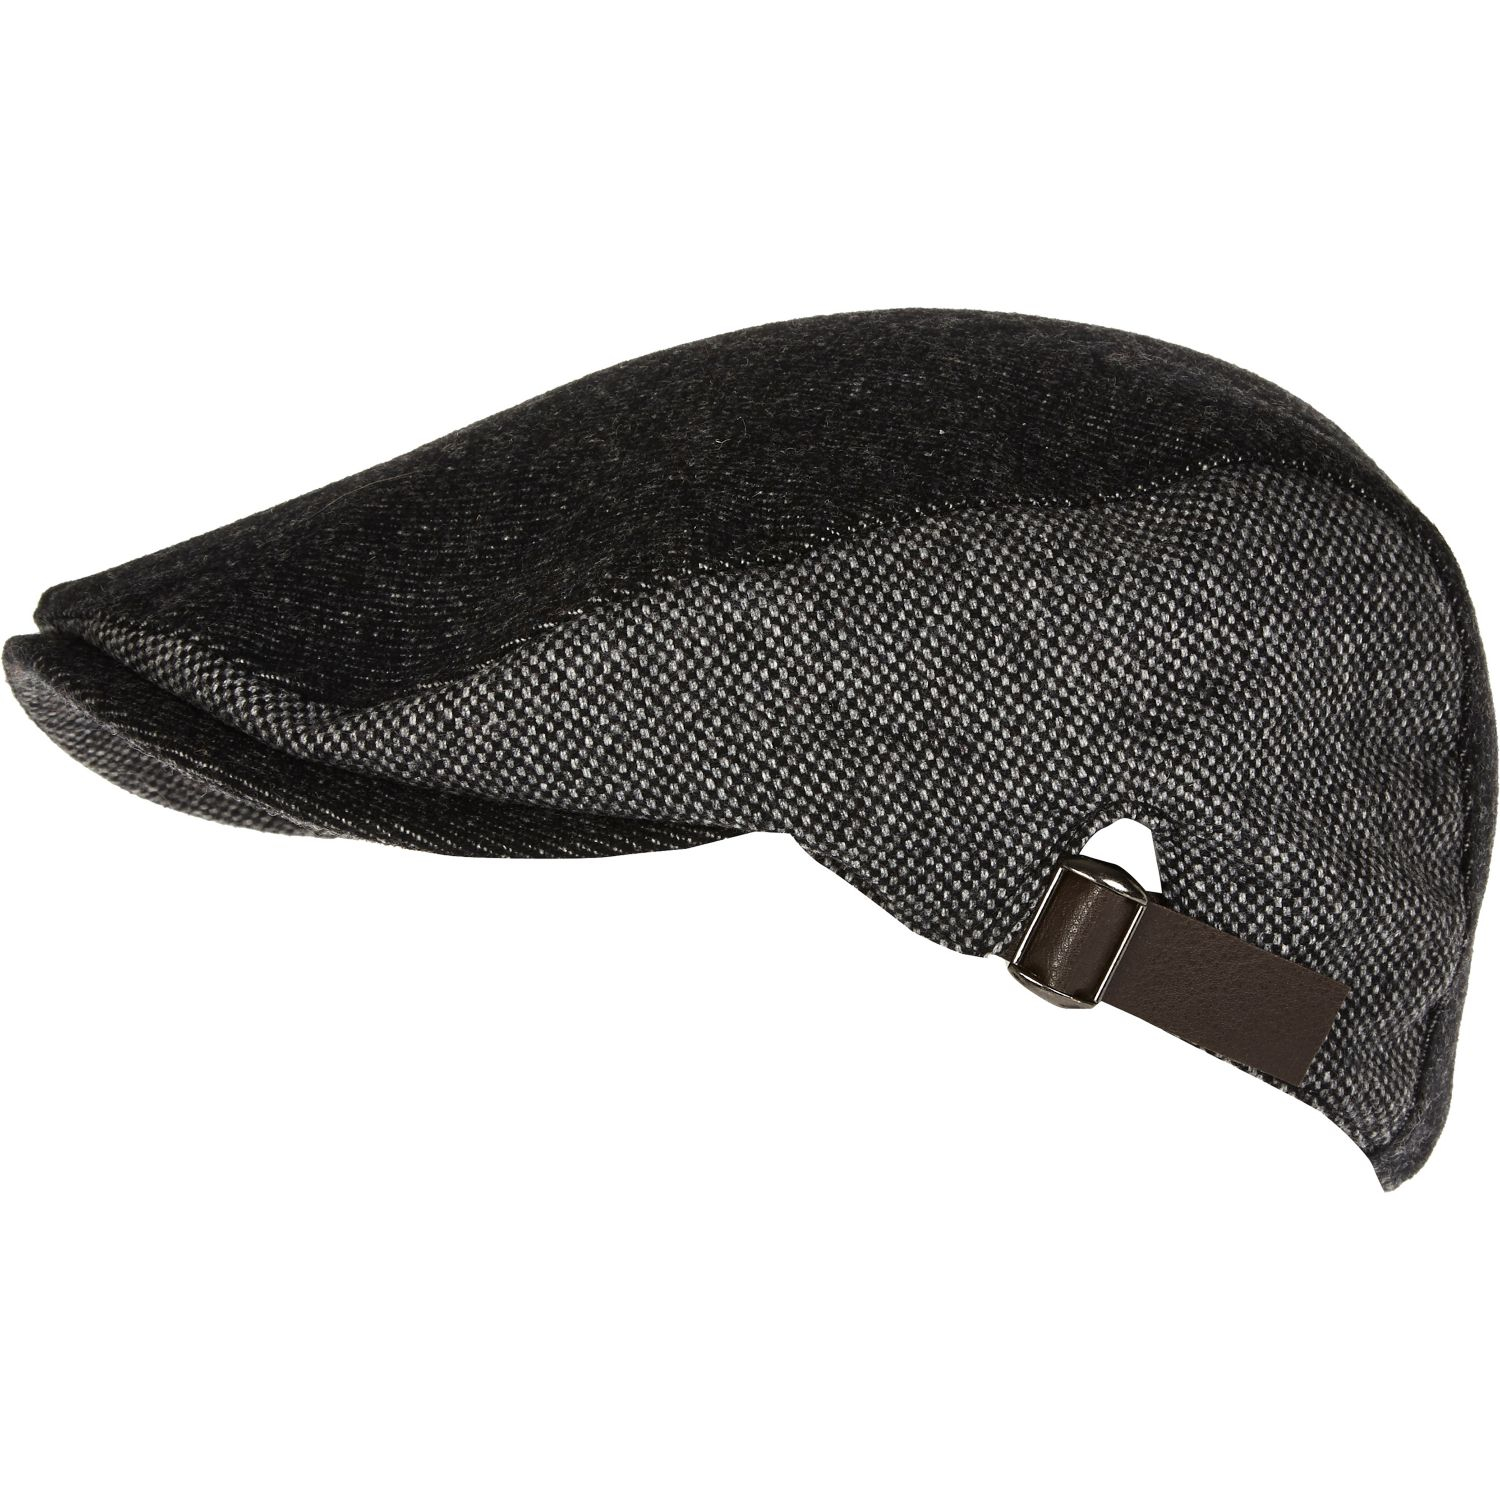 Where to Buy Newsboy Caps at Village Hat Shop - Hats and Caps d63e4b5fd65